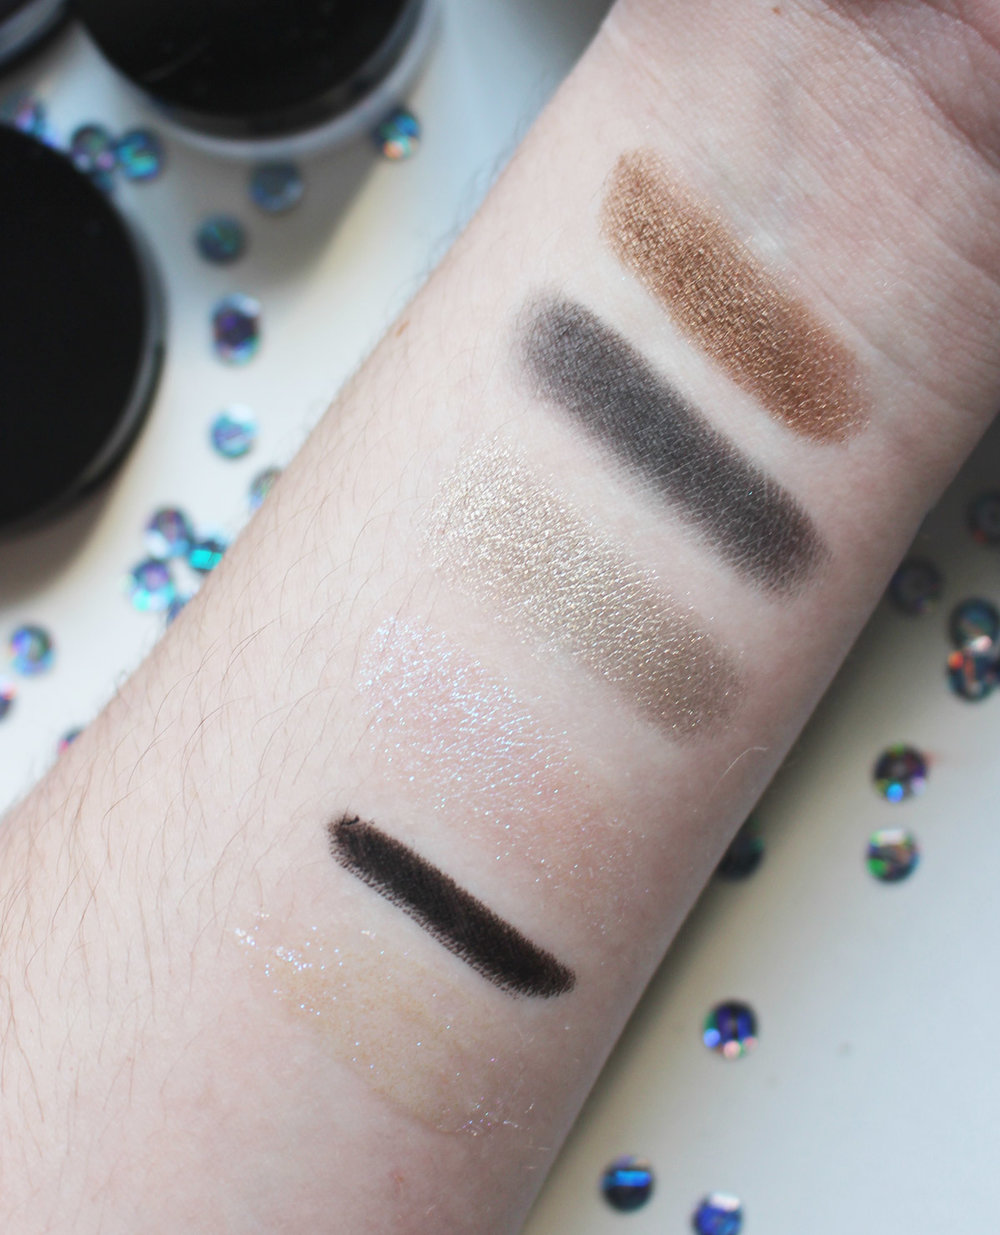 Ultrasuede Brown, Dark Matter, Mercury, Astral White, Kohl Liner, Eye Gloss